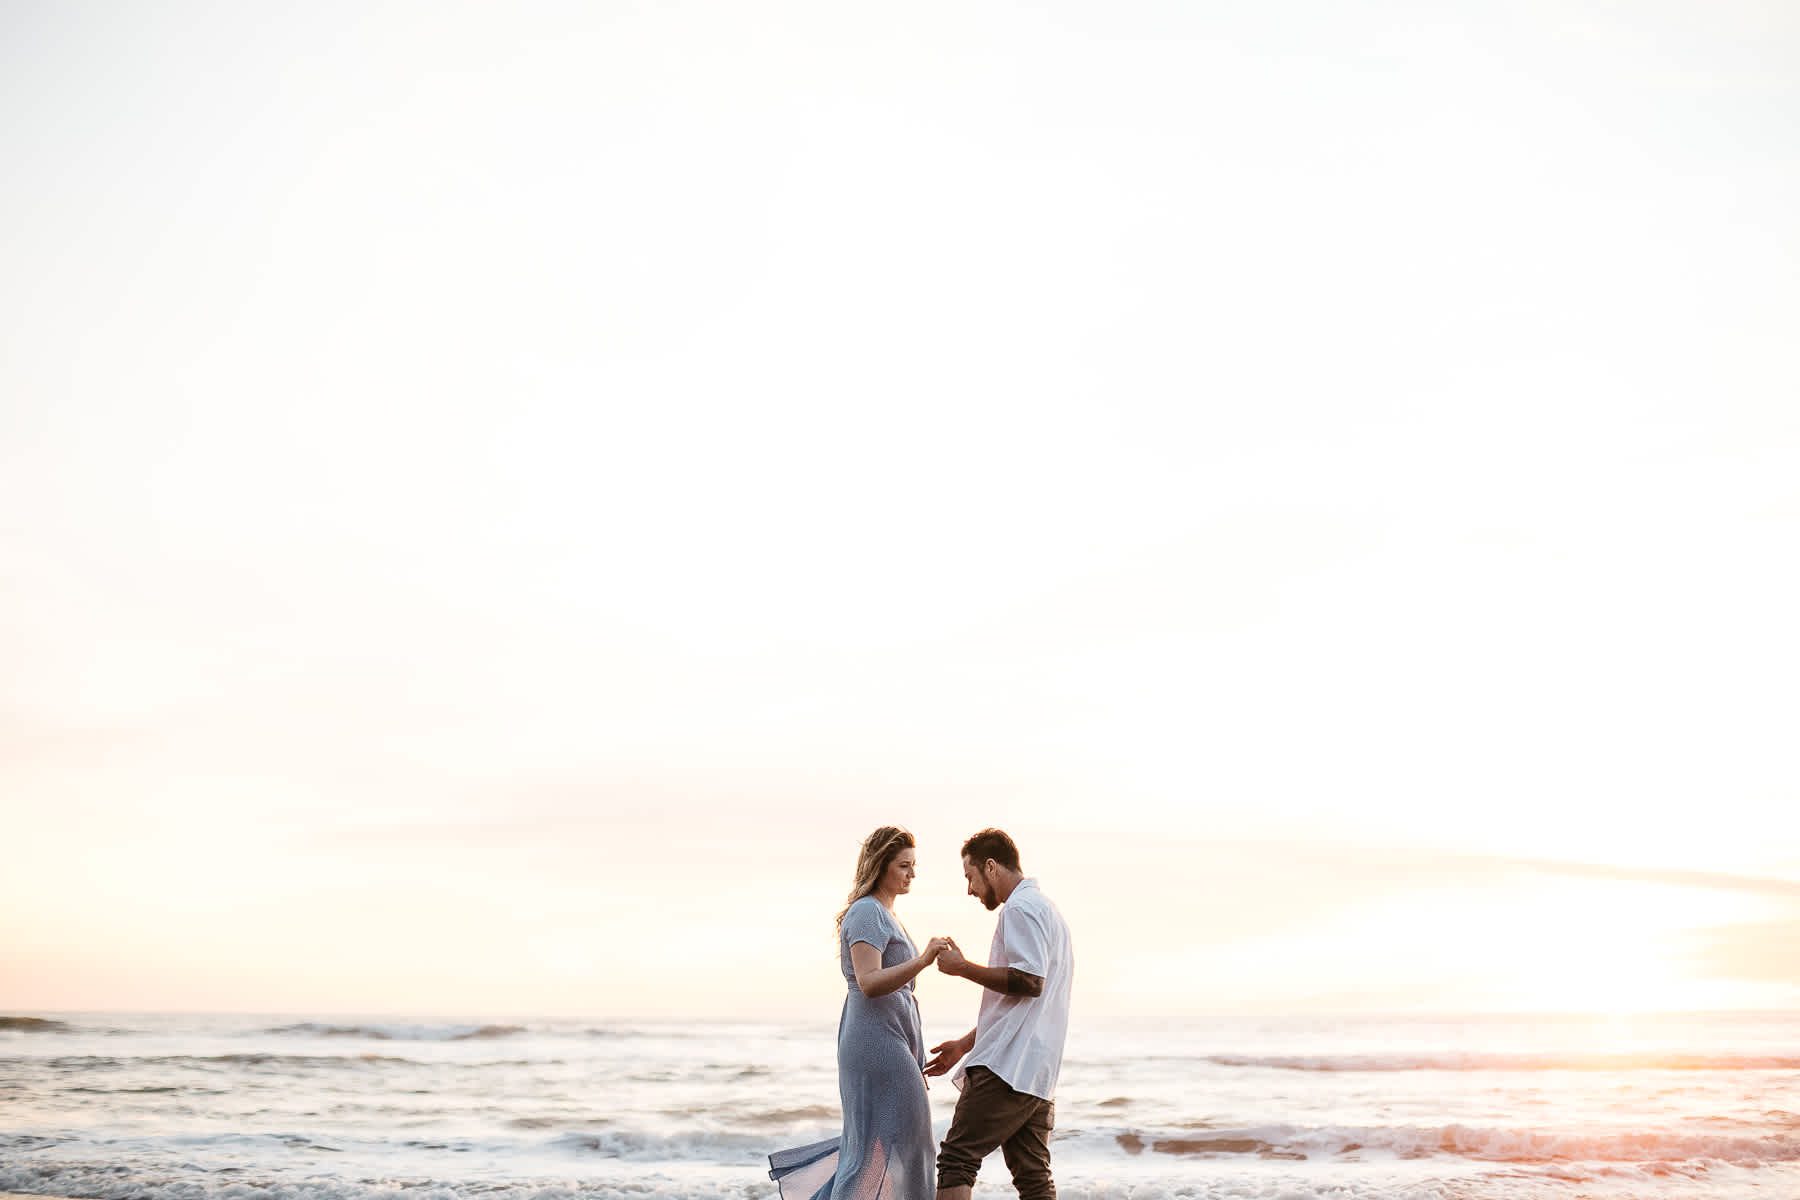 fort-funston-engagement-session-sunset-fun-beach-session-50